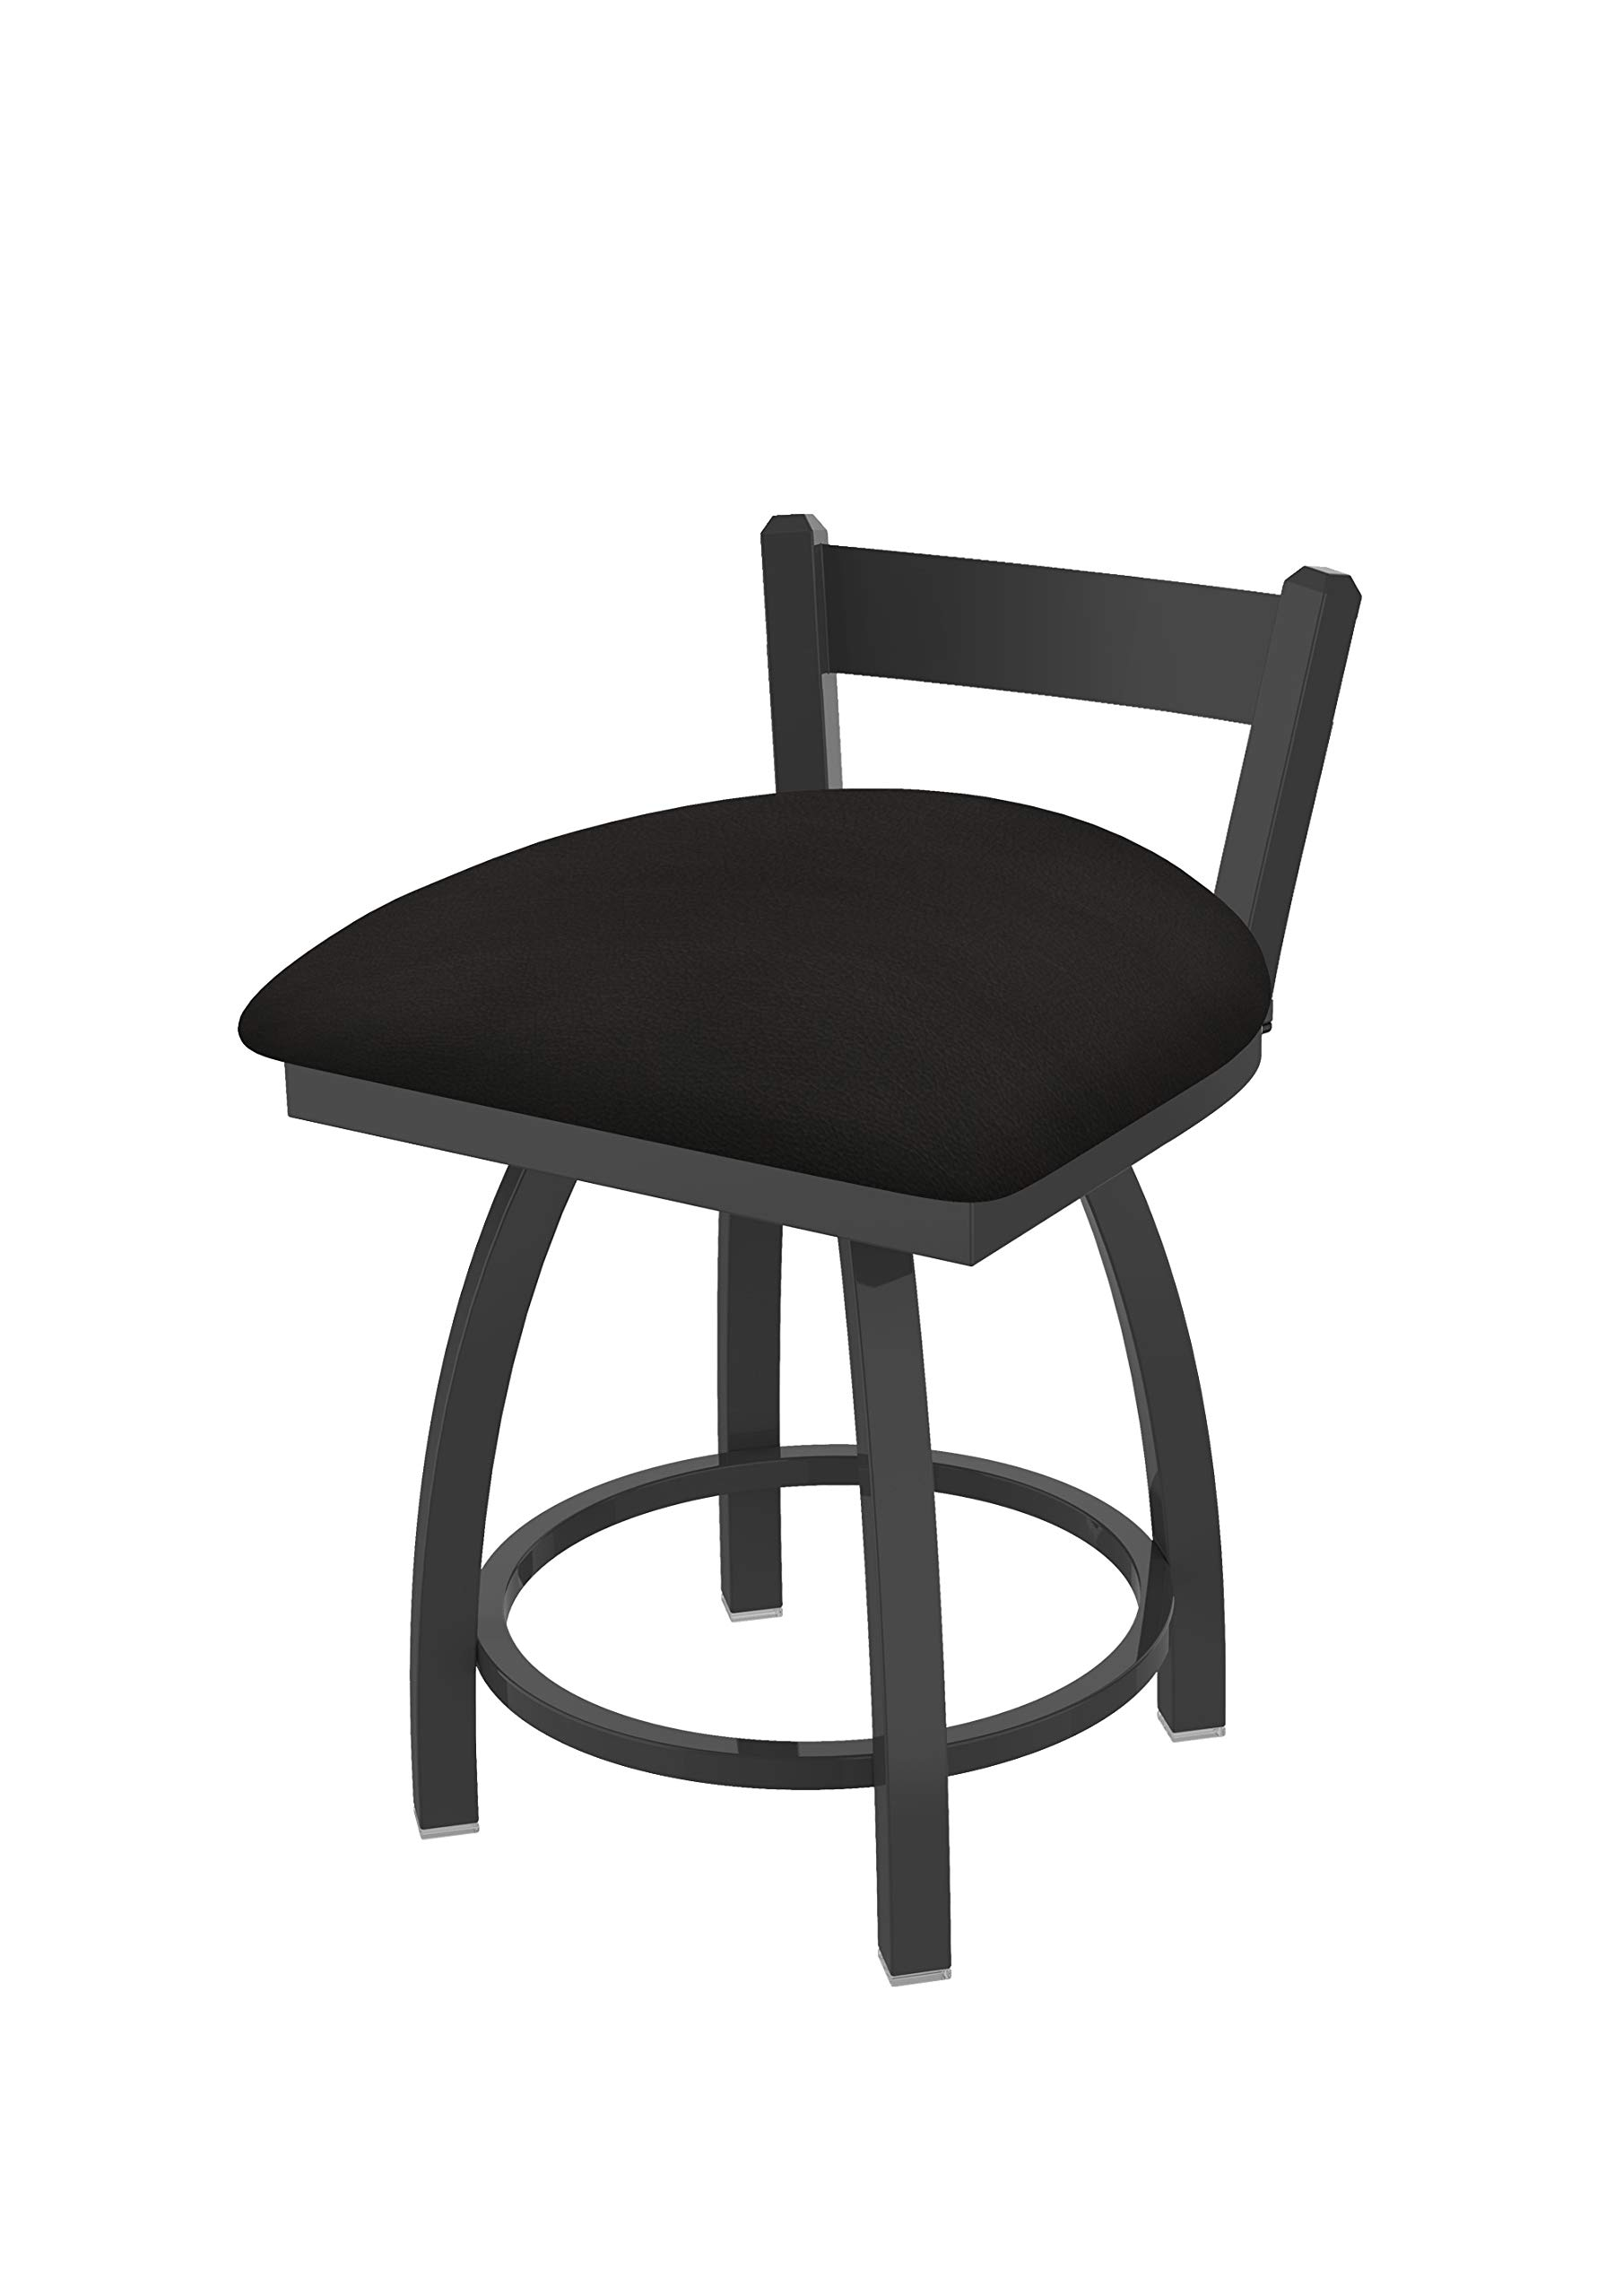 Holland Bar Stool Co. 82118PW003 821 Catalina 18'' Low Back Swivel Vanity Pewter Finish and Canter Espresso Seat Bar Stool